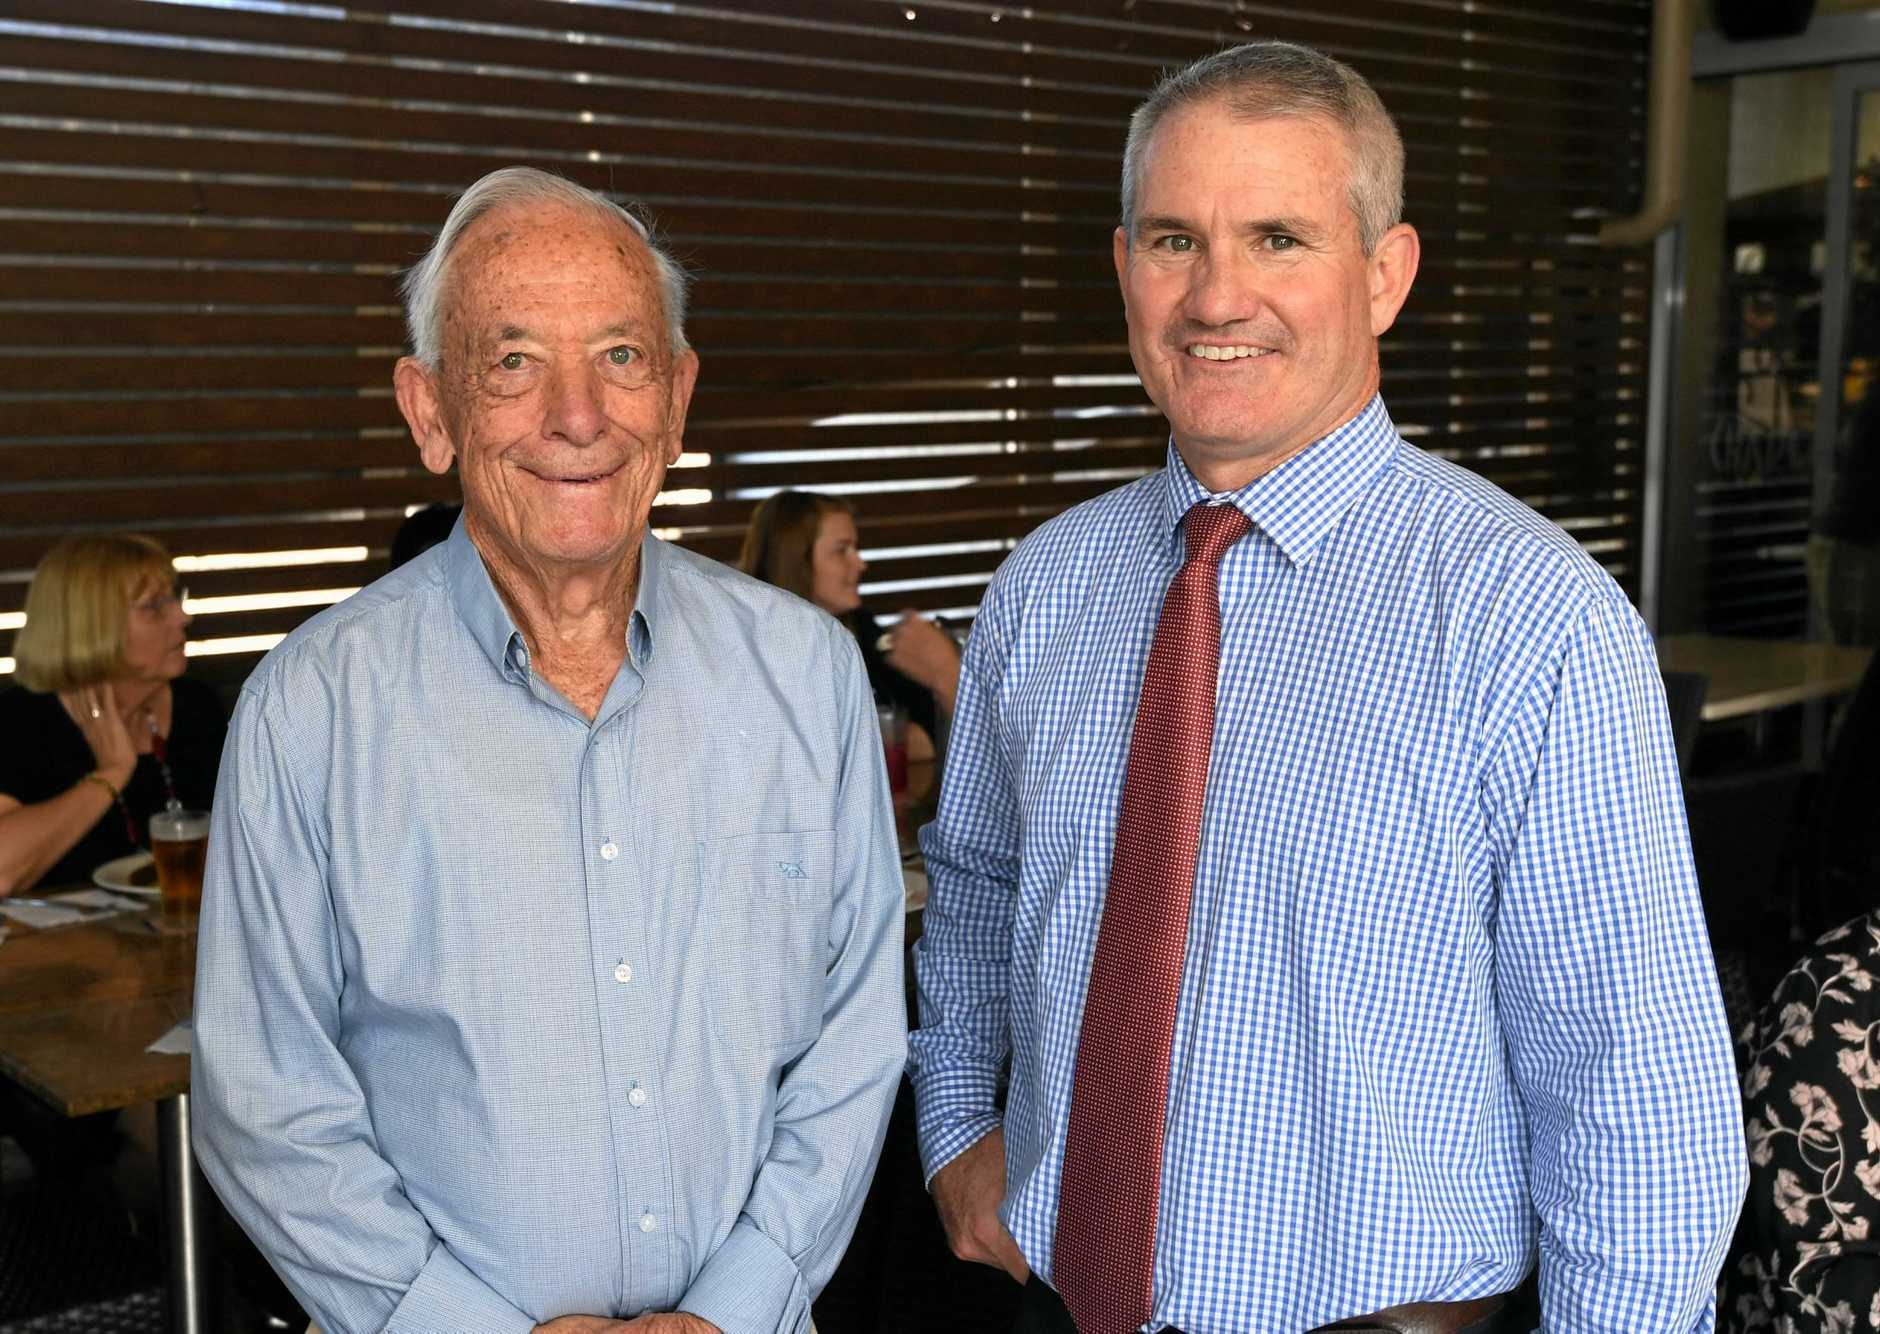 FAMILY PRACTICE: Jack and John Cartwright celebrat e John's 25 years practising law in the Gympie region with Power and Cartwright.